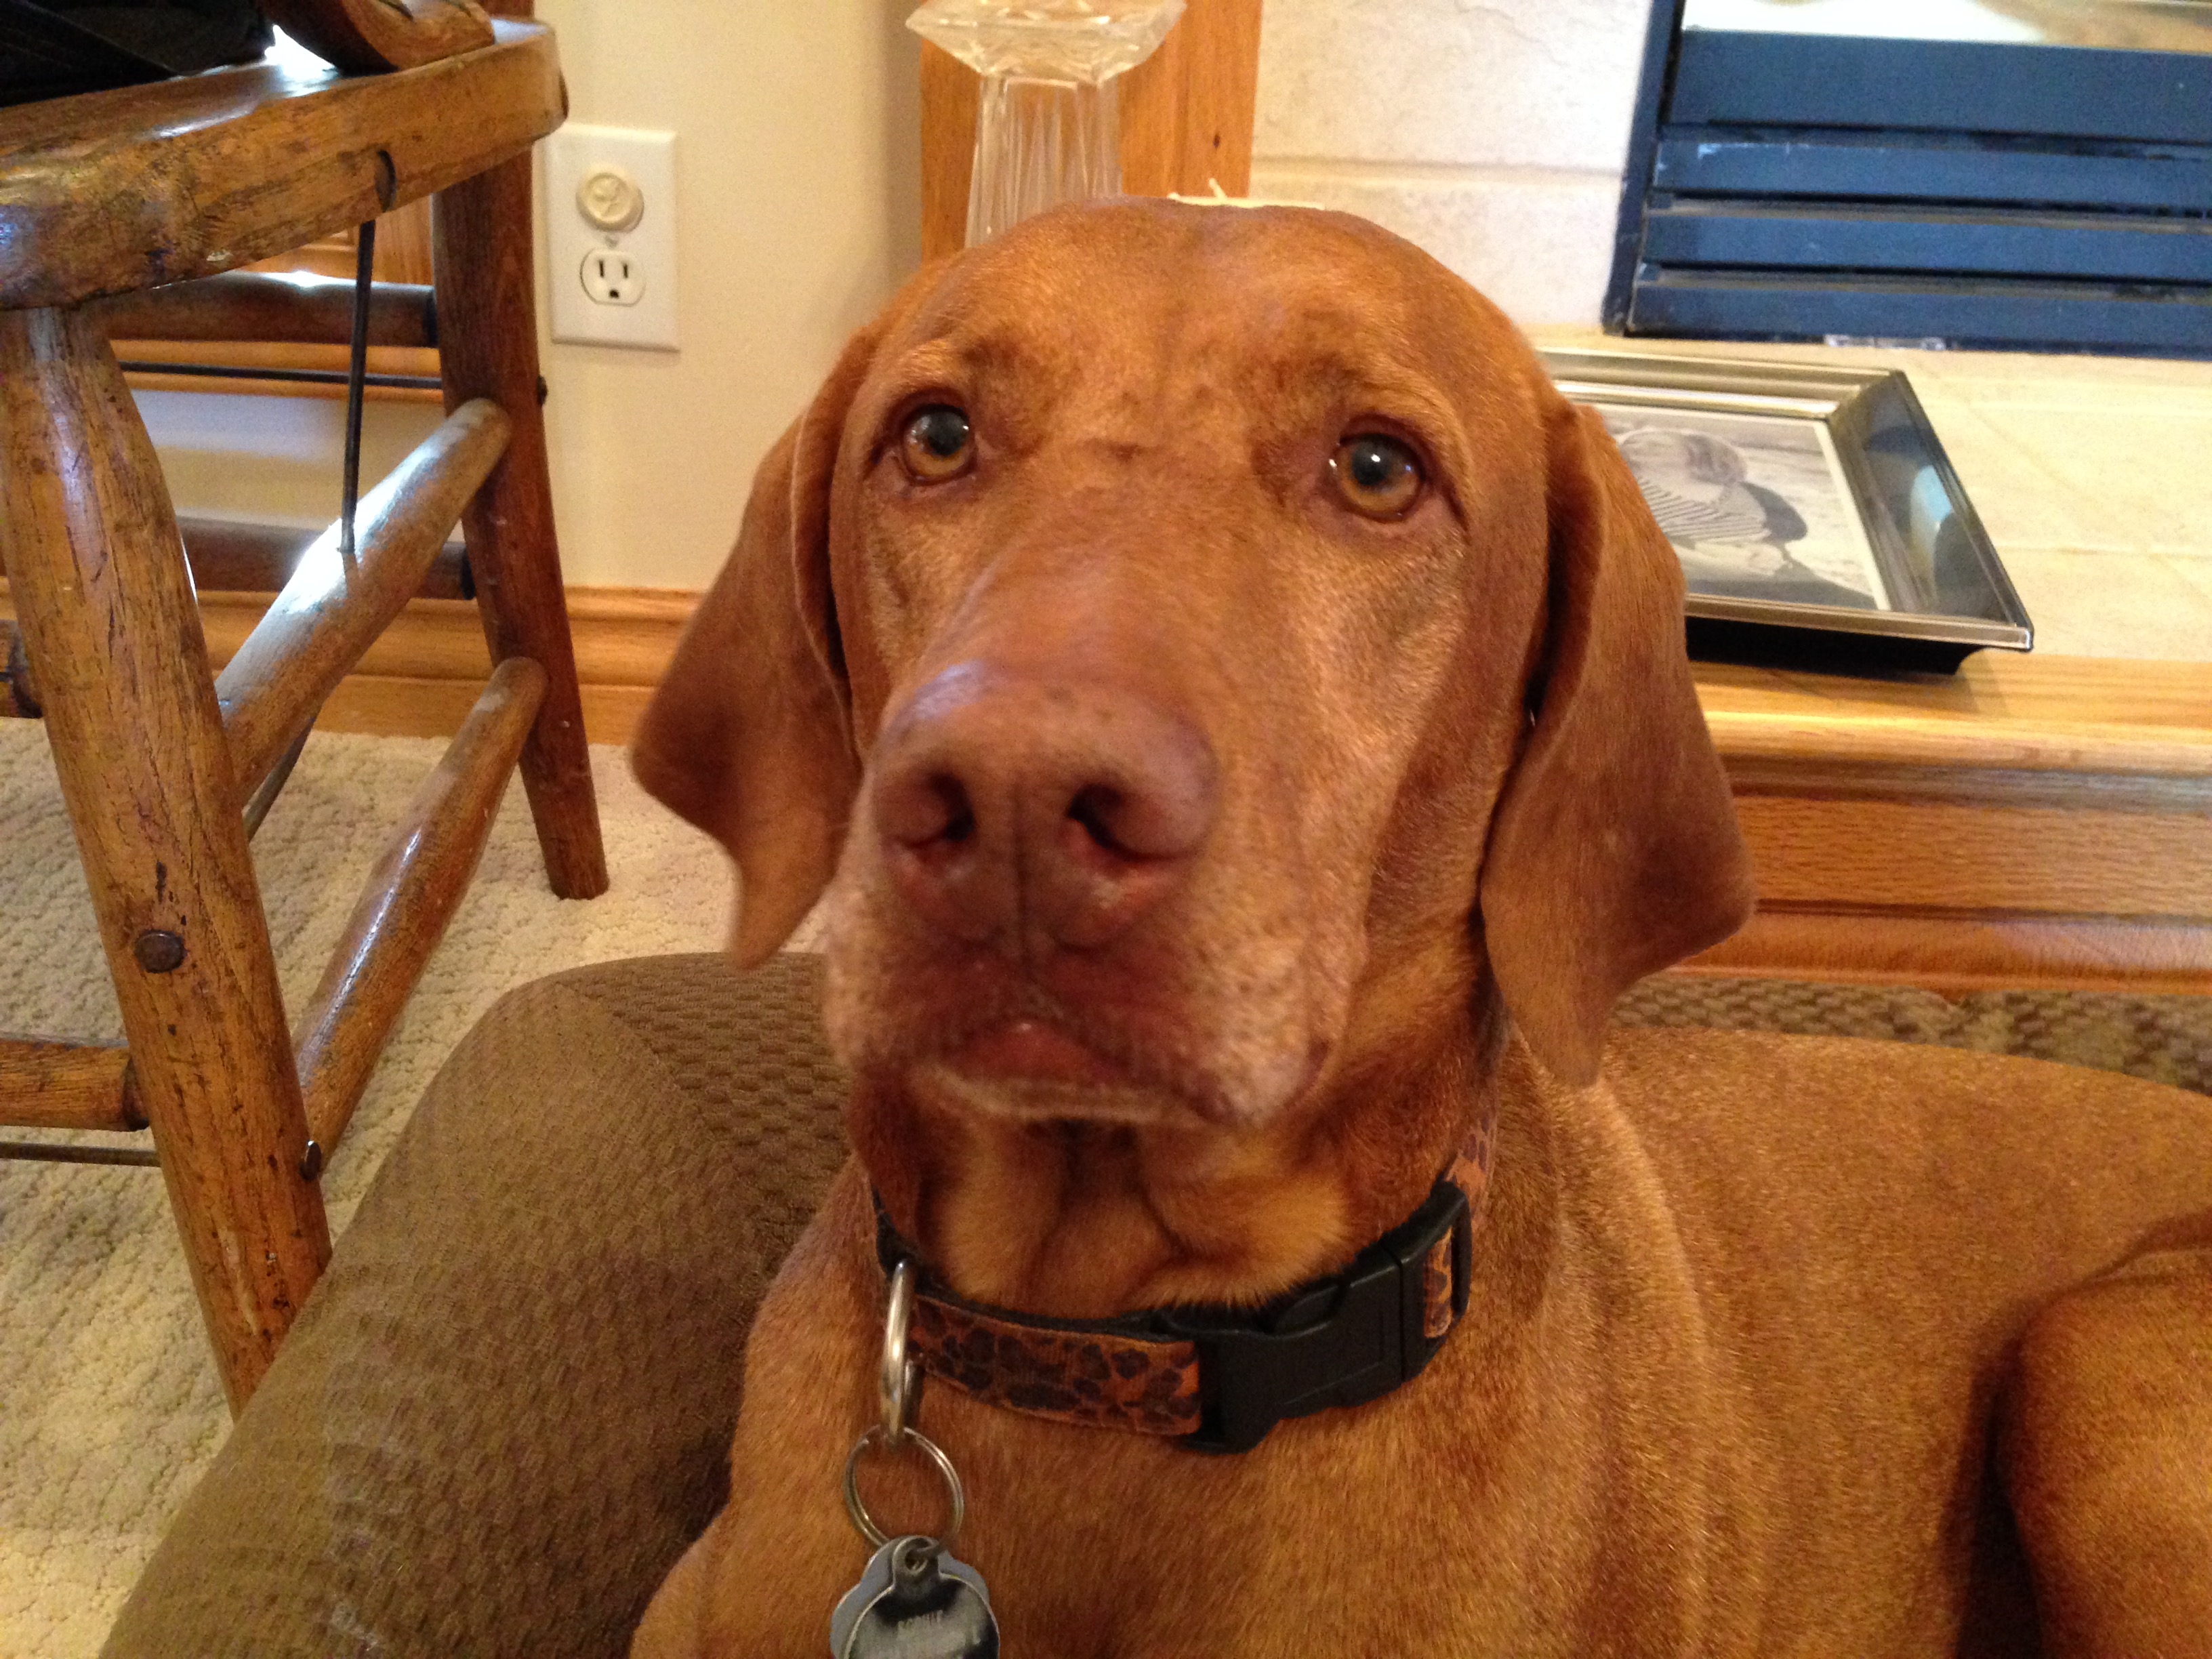 Sophie Is A Six Year Old Vizsla Who Has Changed In Personality Since Her Guardians Father Moved Out Showing Occasional Displays Of Aggression Towards The